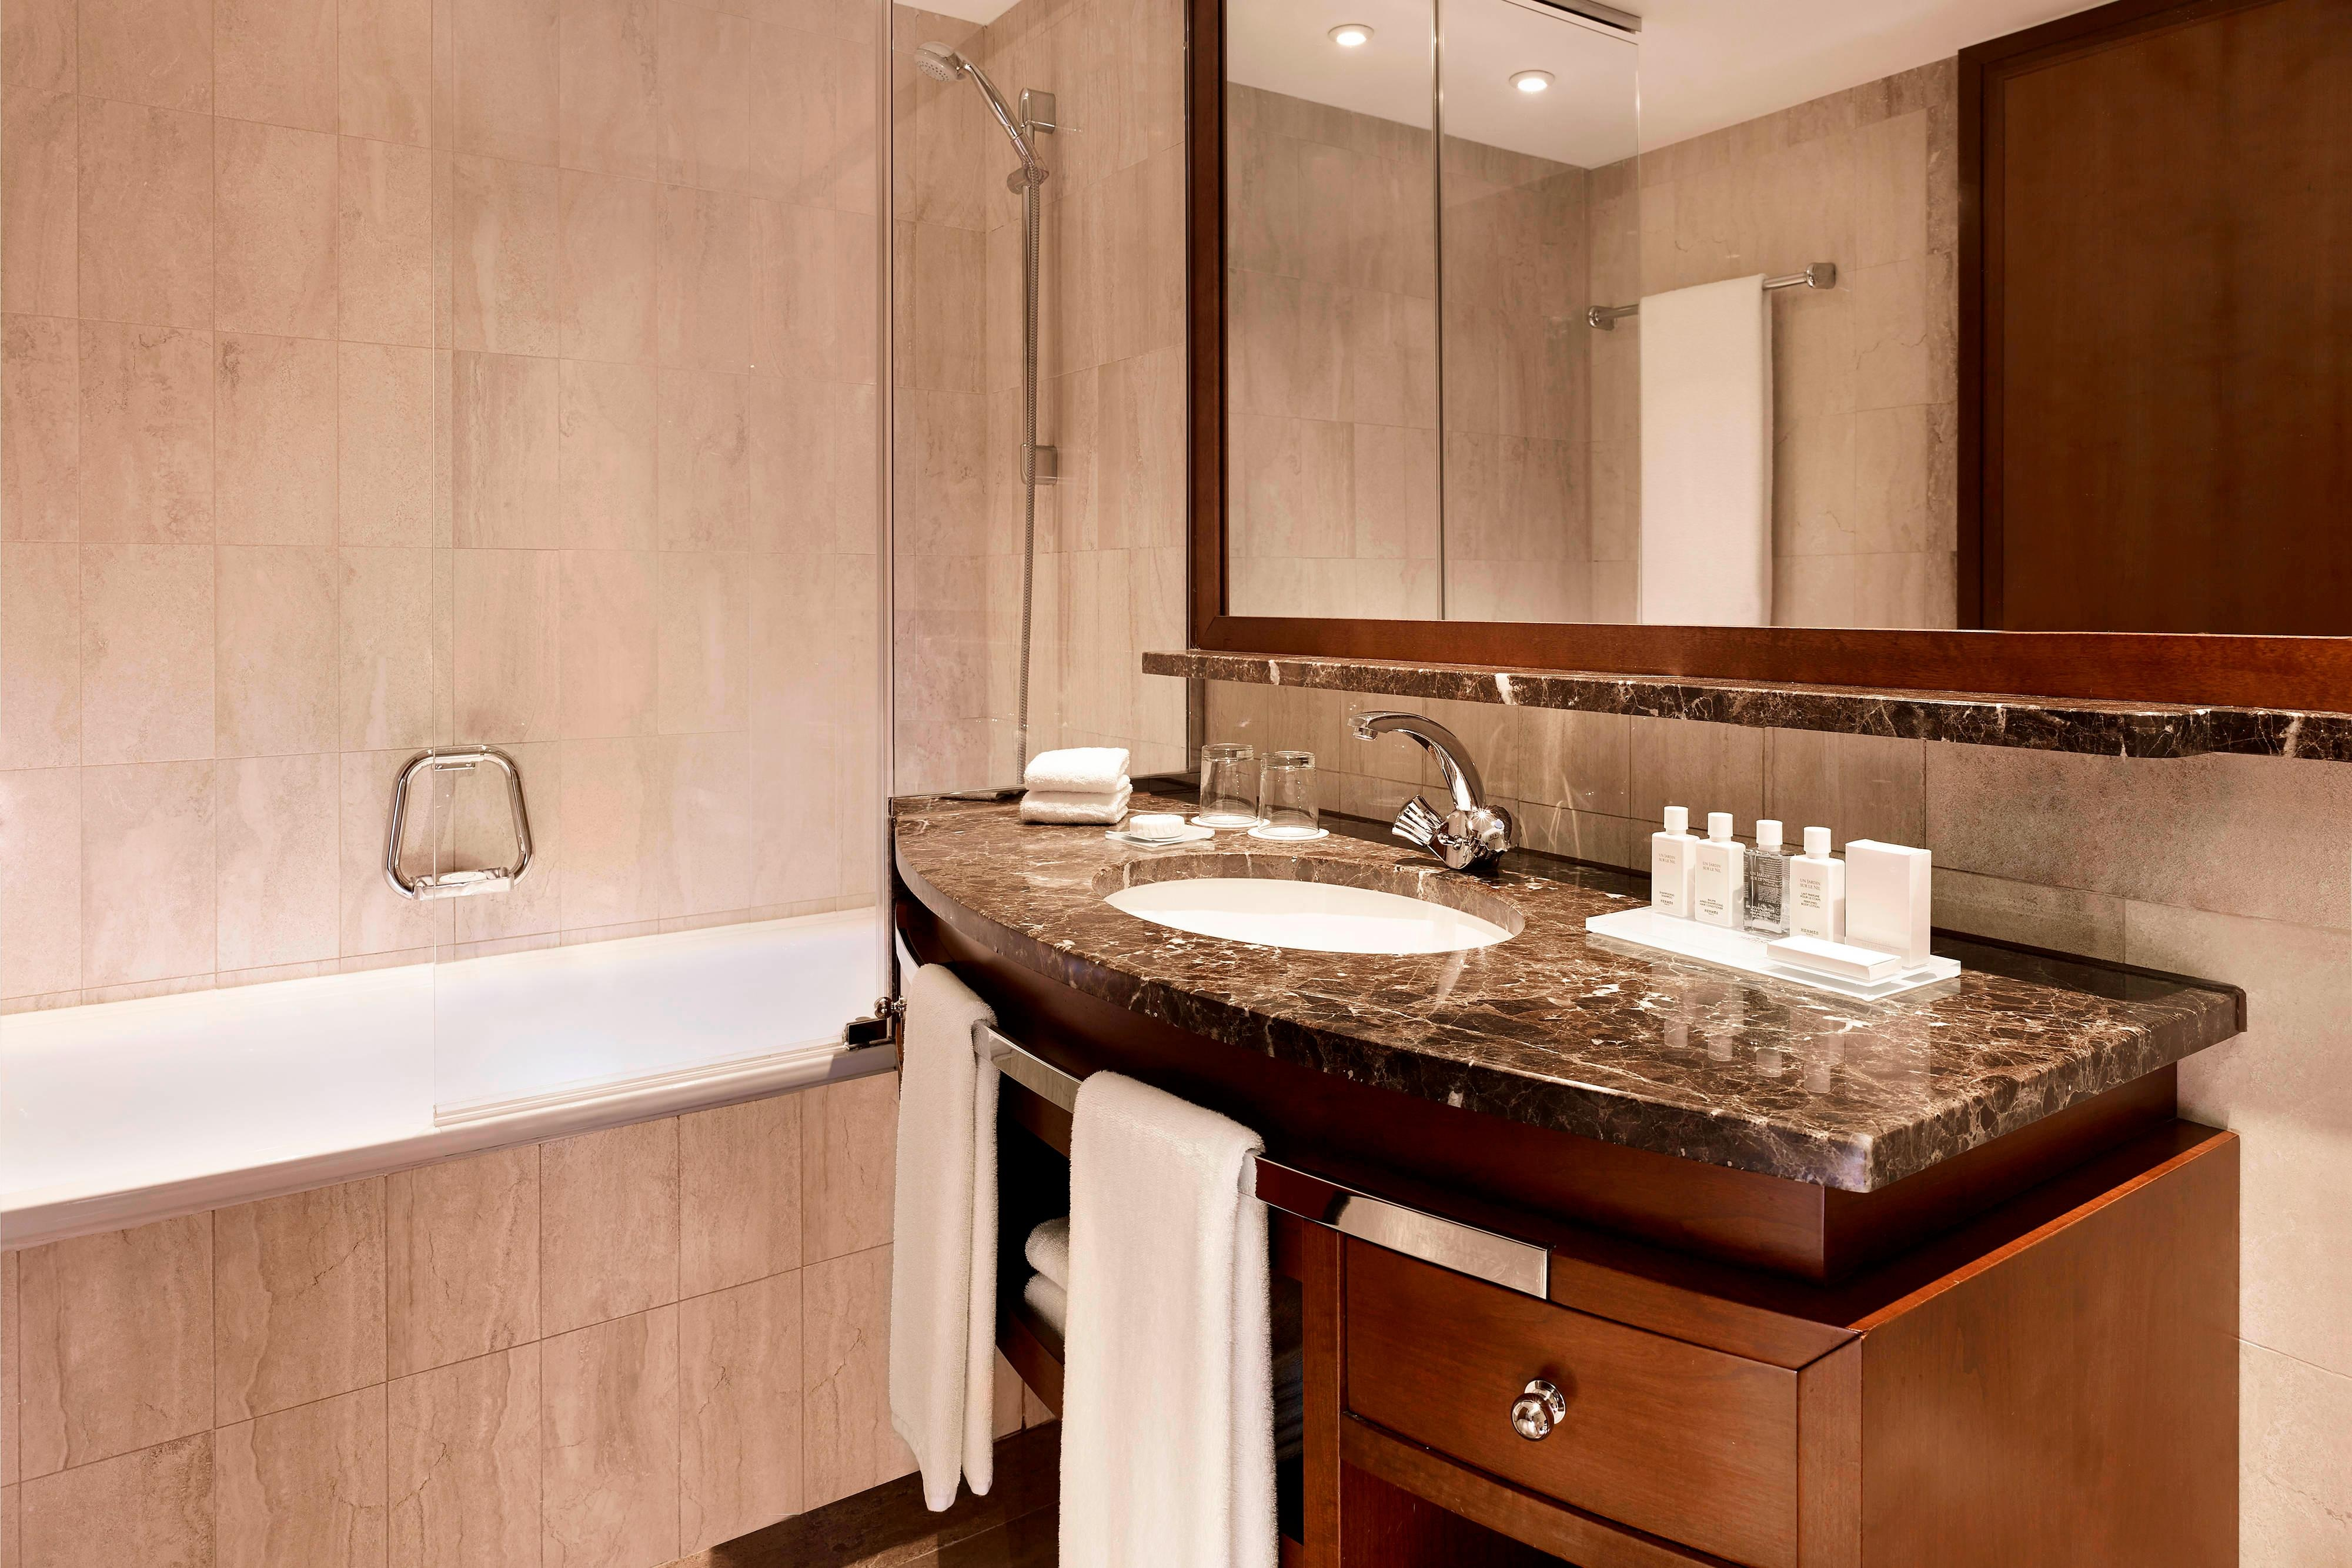 Grand Superior Room & Grand Deluxe Room Bathroom